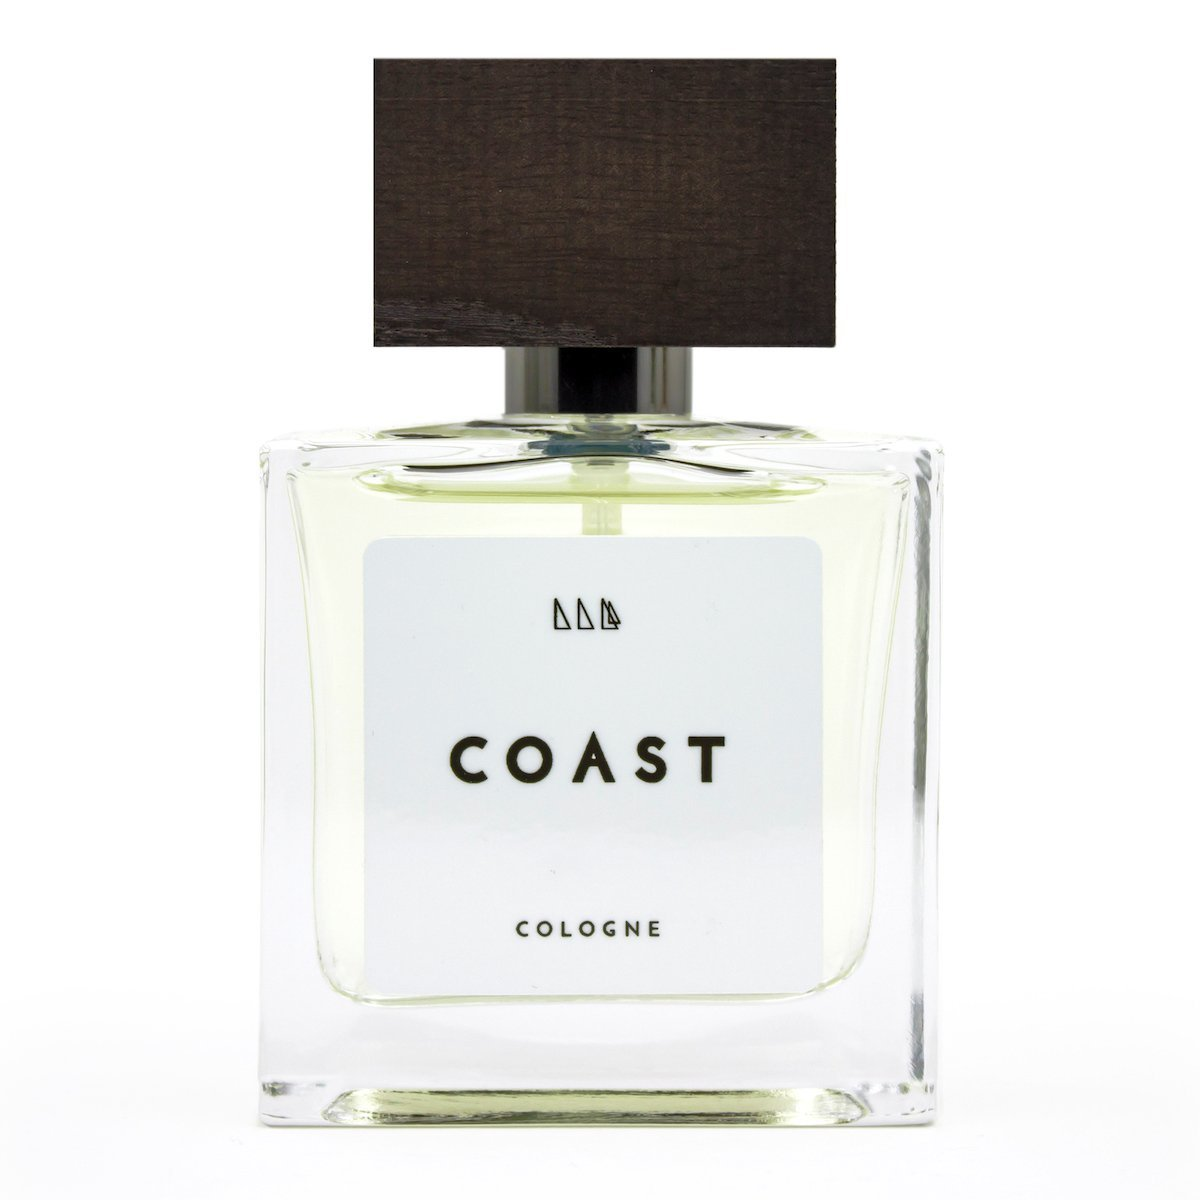 Coast - 50ml Cologne by Thomas Clipper